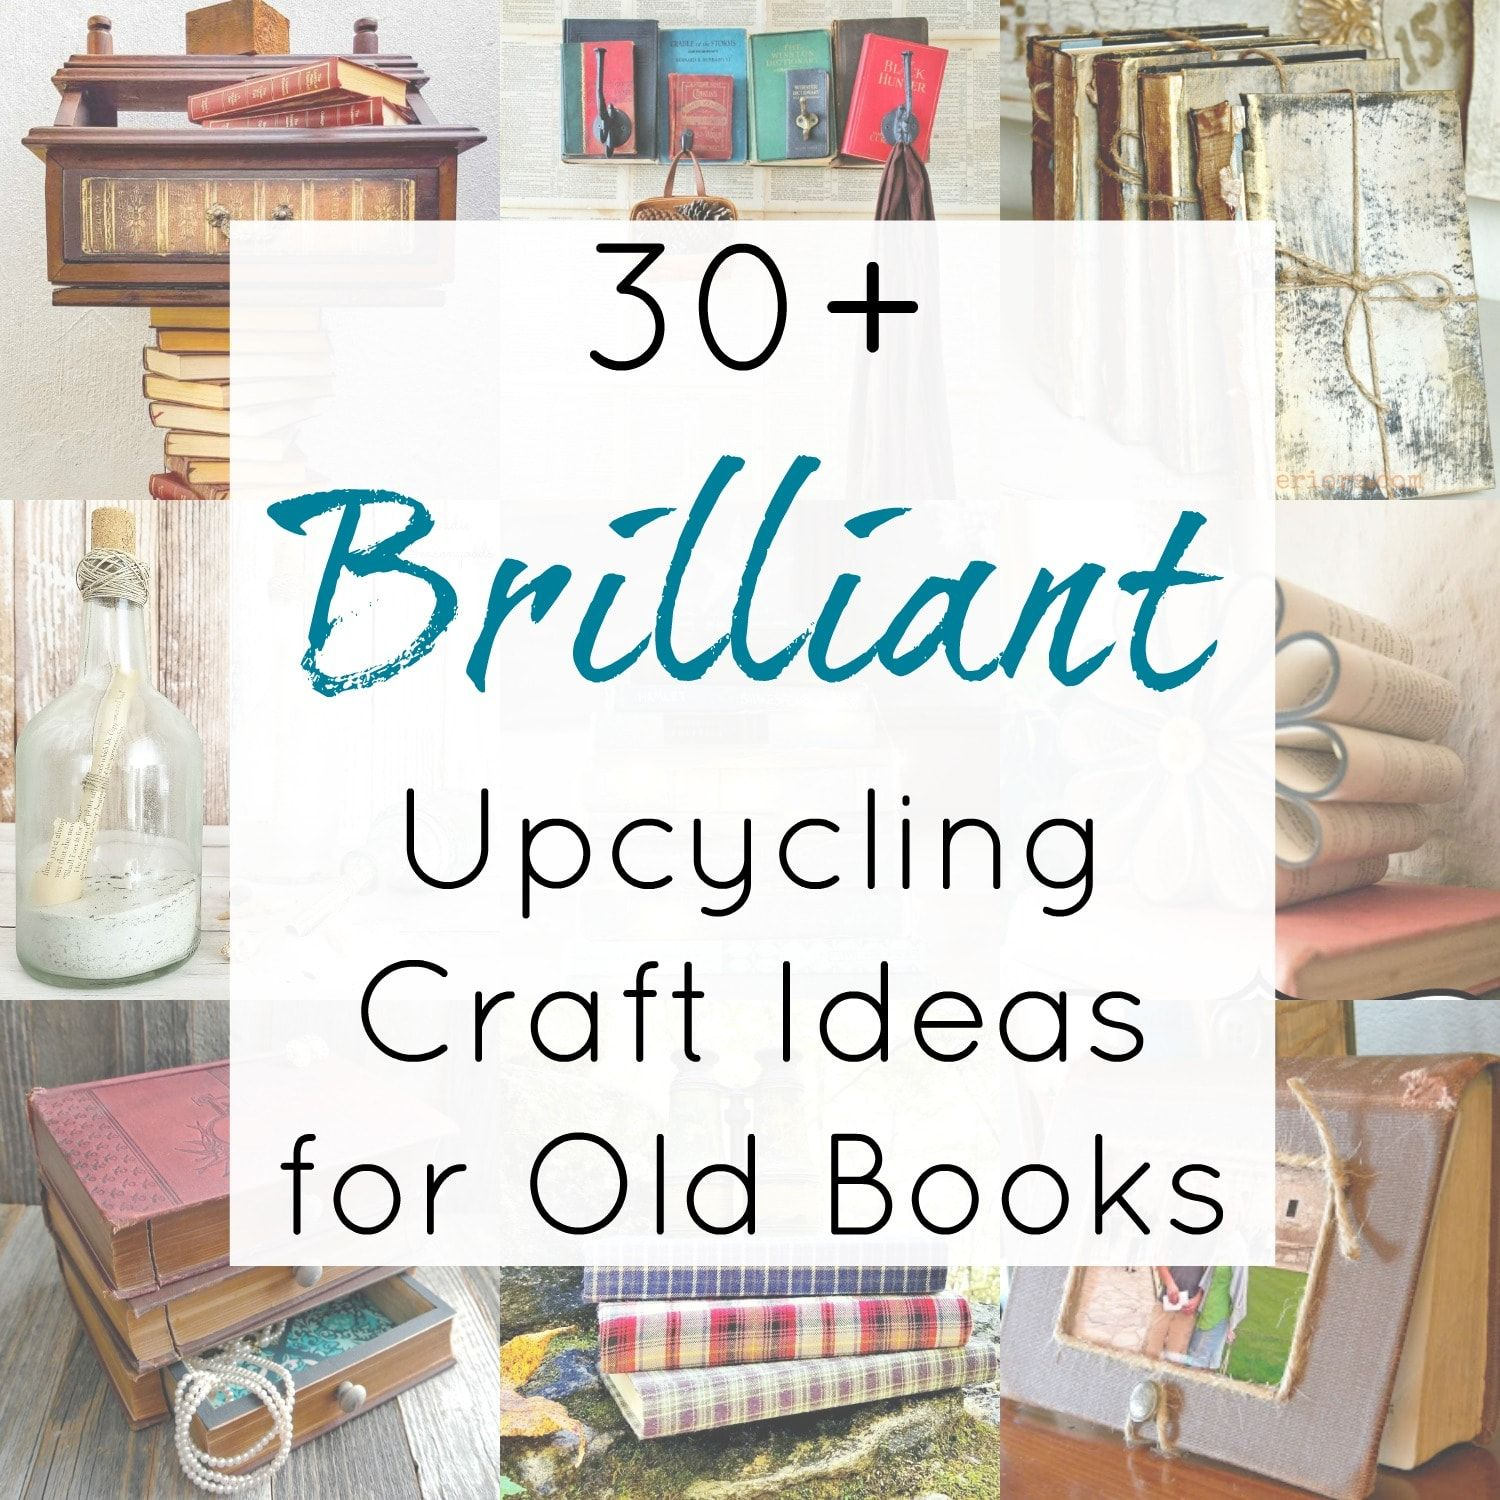 30 Upcycling Ideas For Old Books In 2020 Diy Old Books